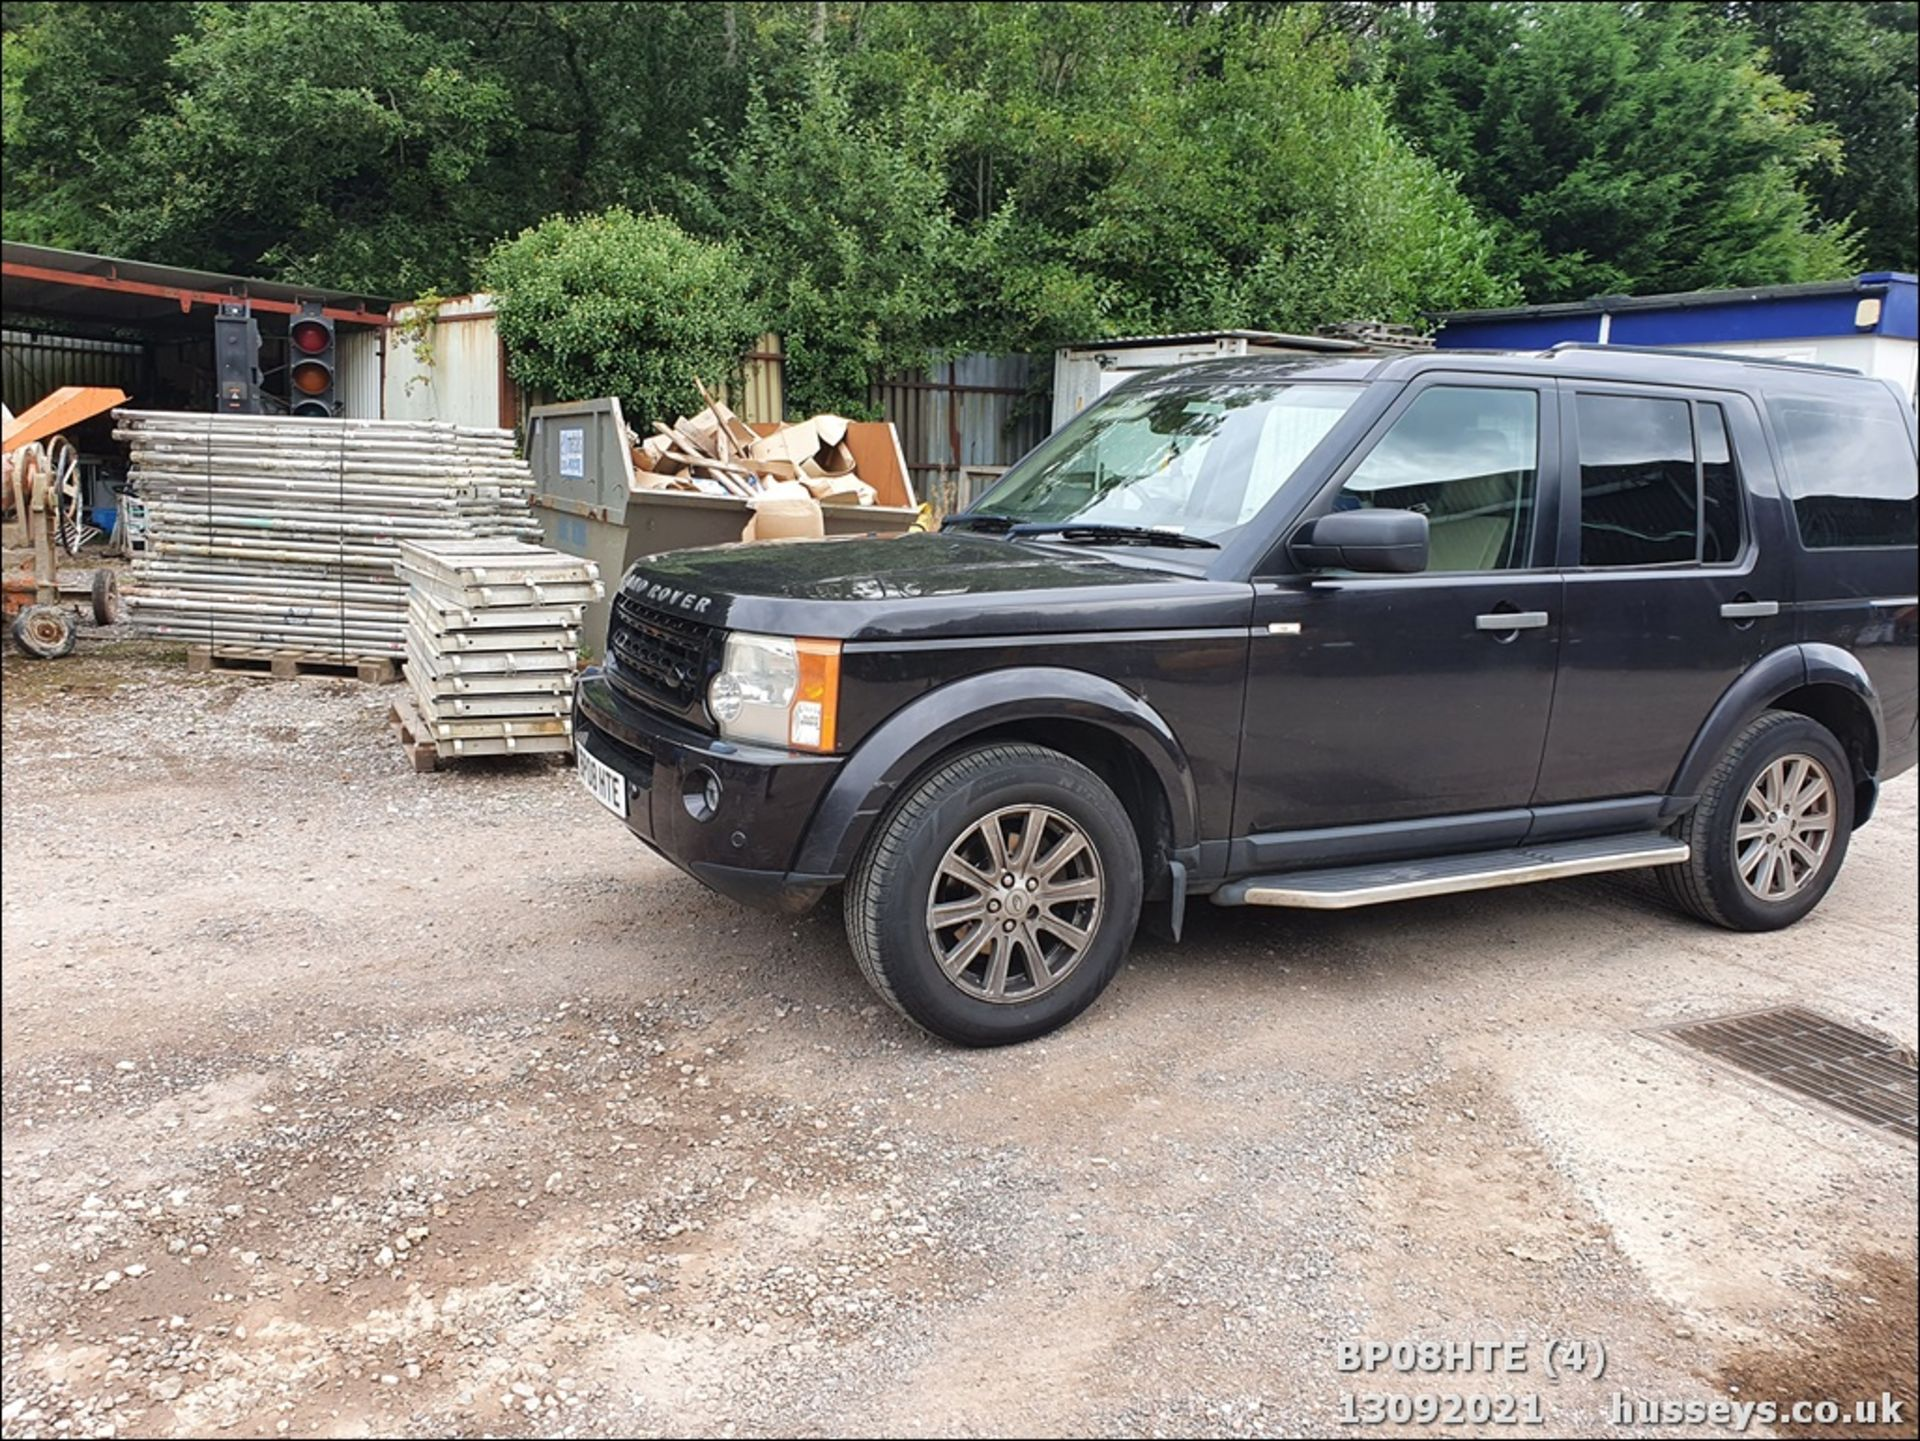 08/08 LAND ROVER DISCOVERY TDV6 SE A - 2720cc 5dr Estate (Brown, 190k) - Image 4 of 18